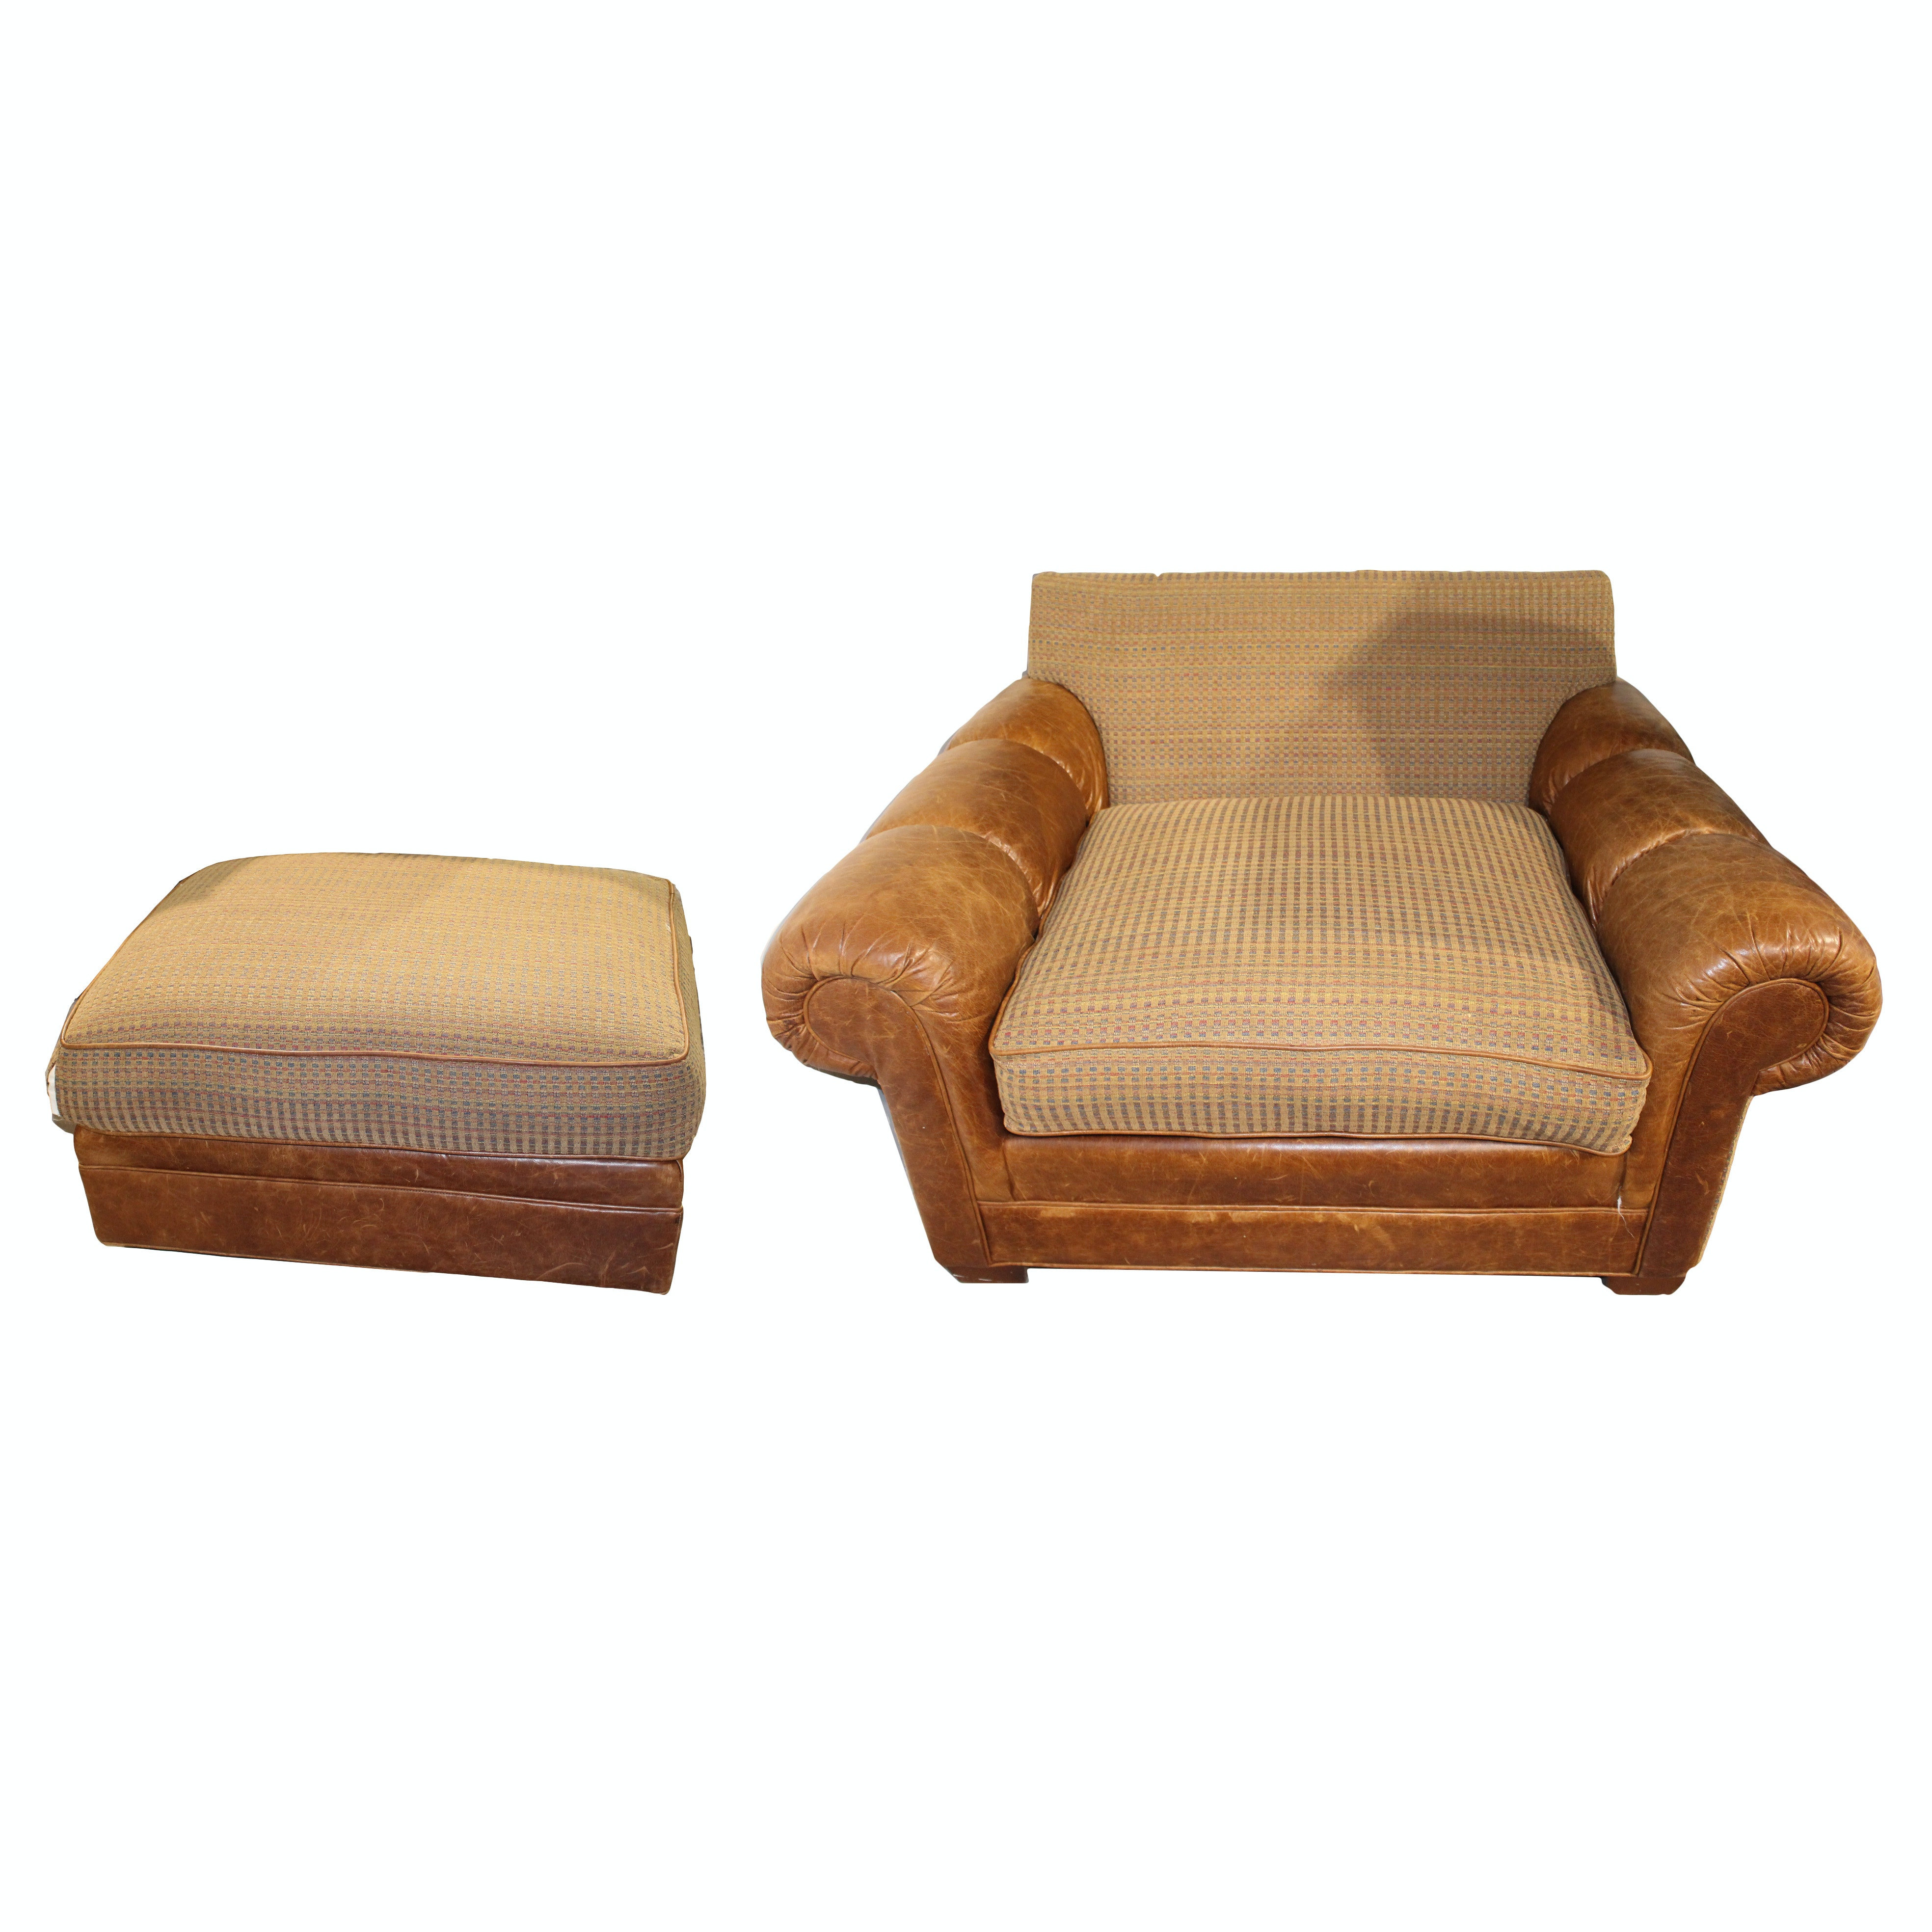 Leather Accent Chair and Ottoman by King Hickory